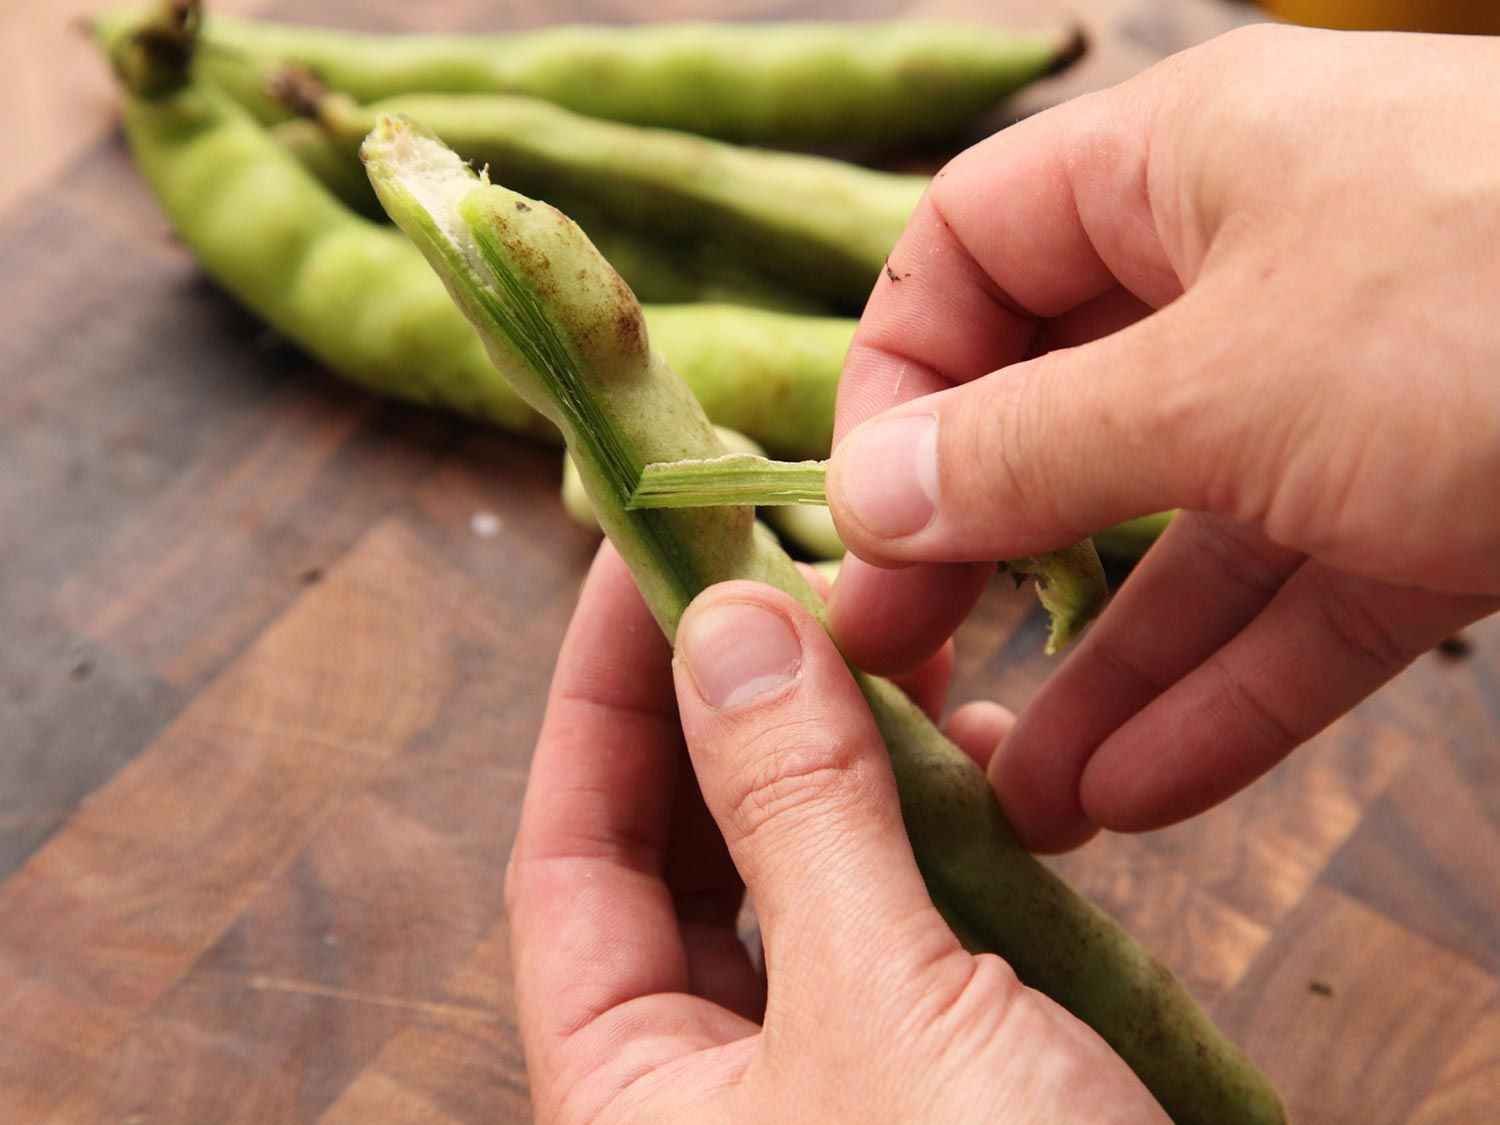 20150504-how-to-prepare-spring-green-produce05.jpg